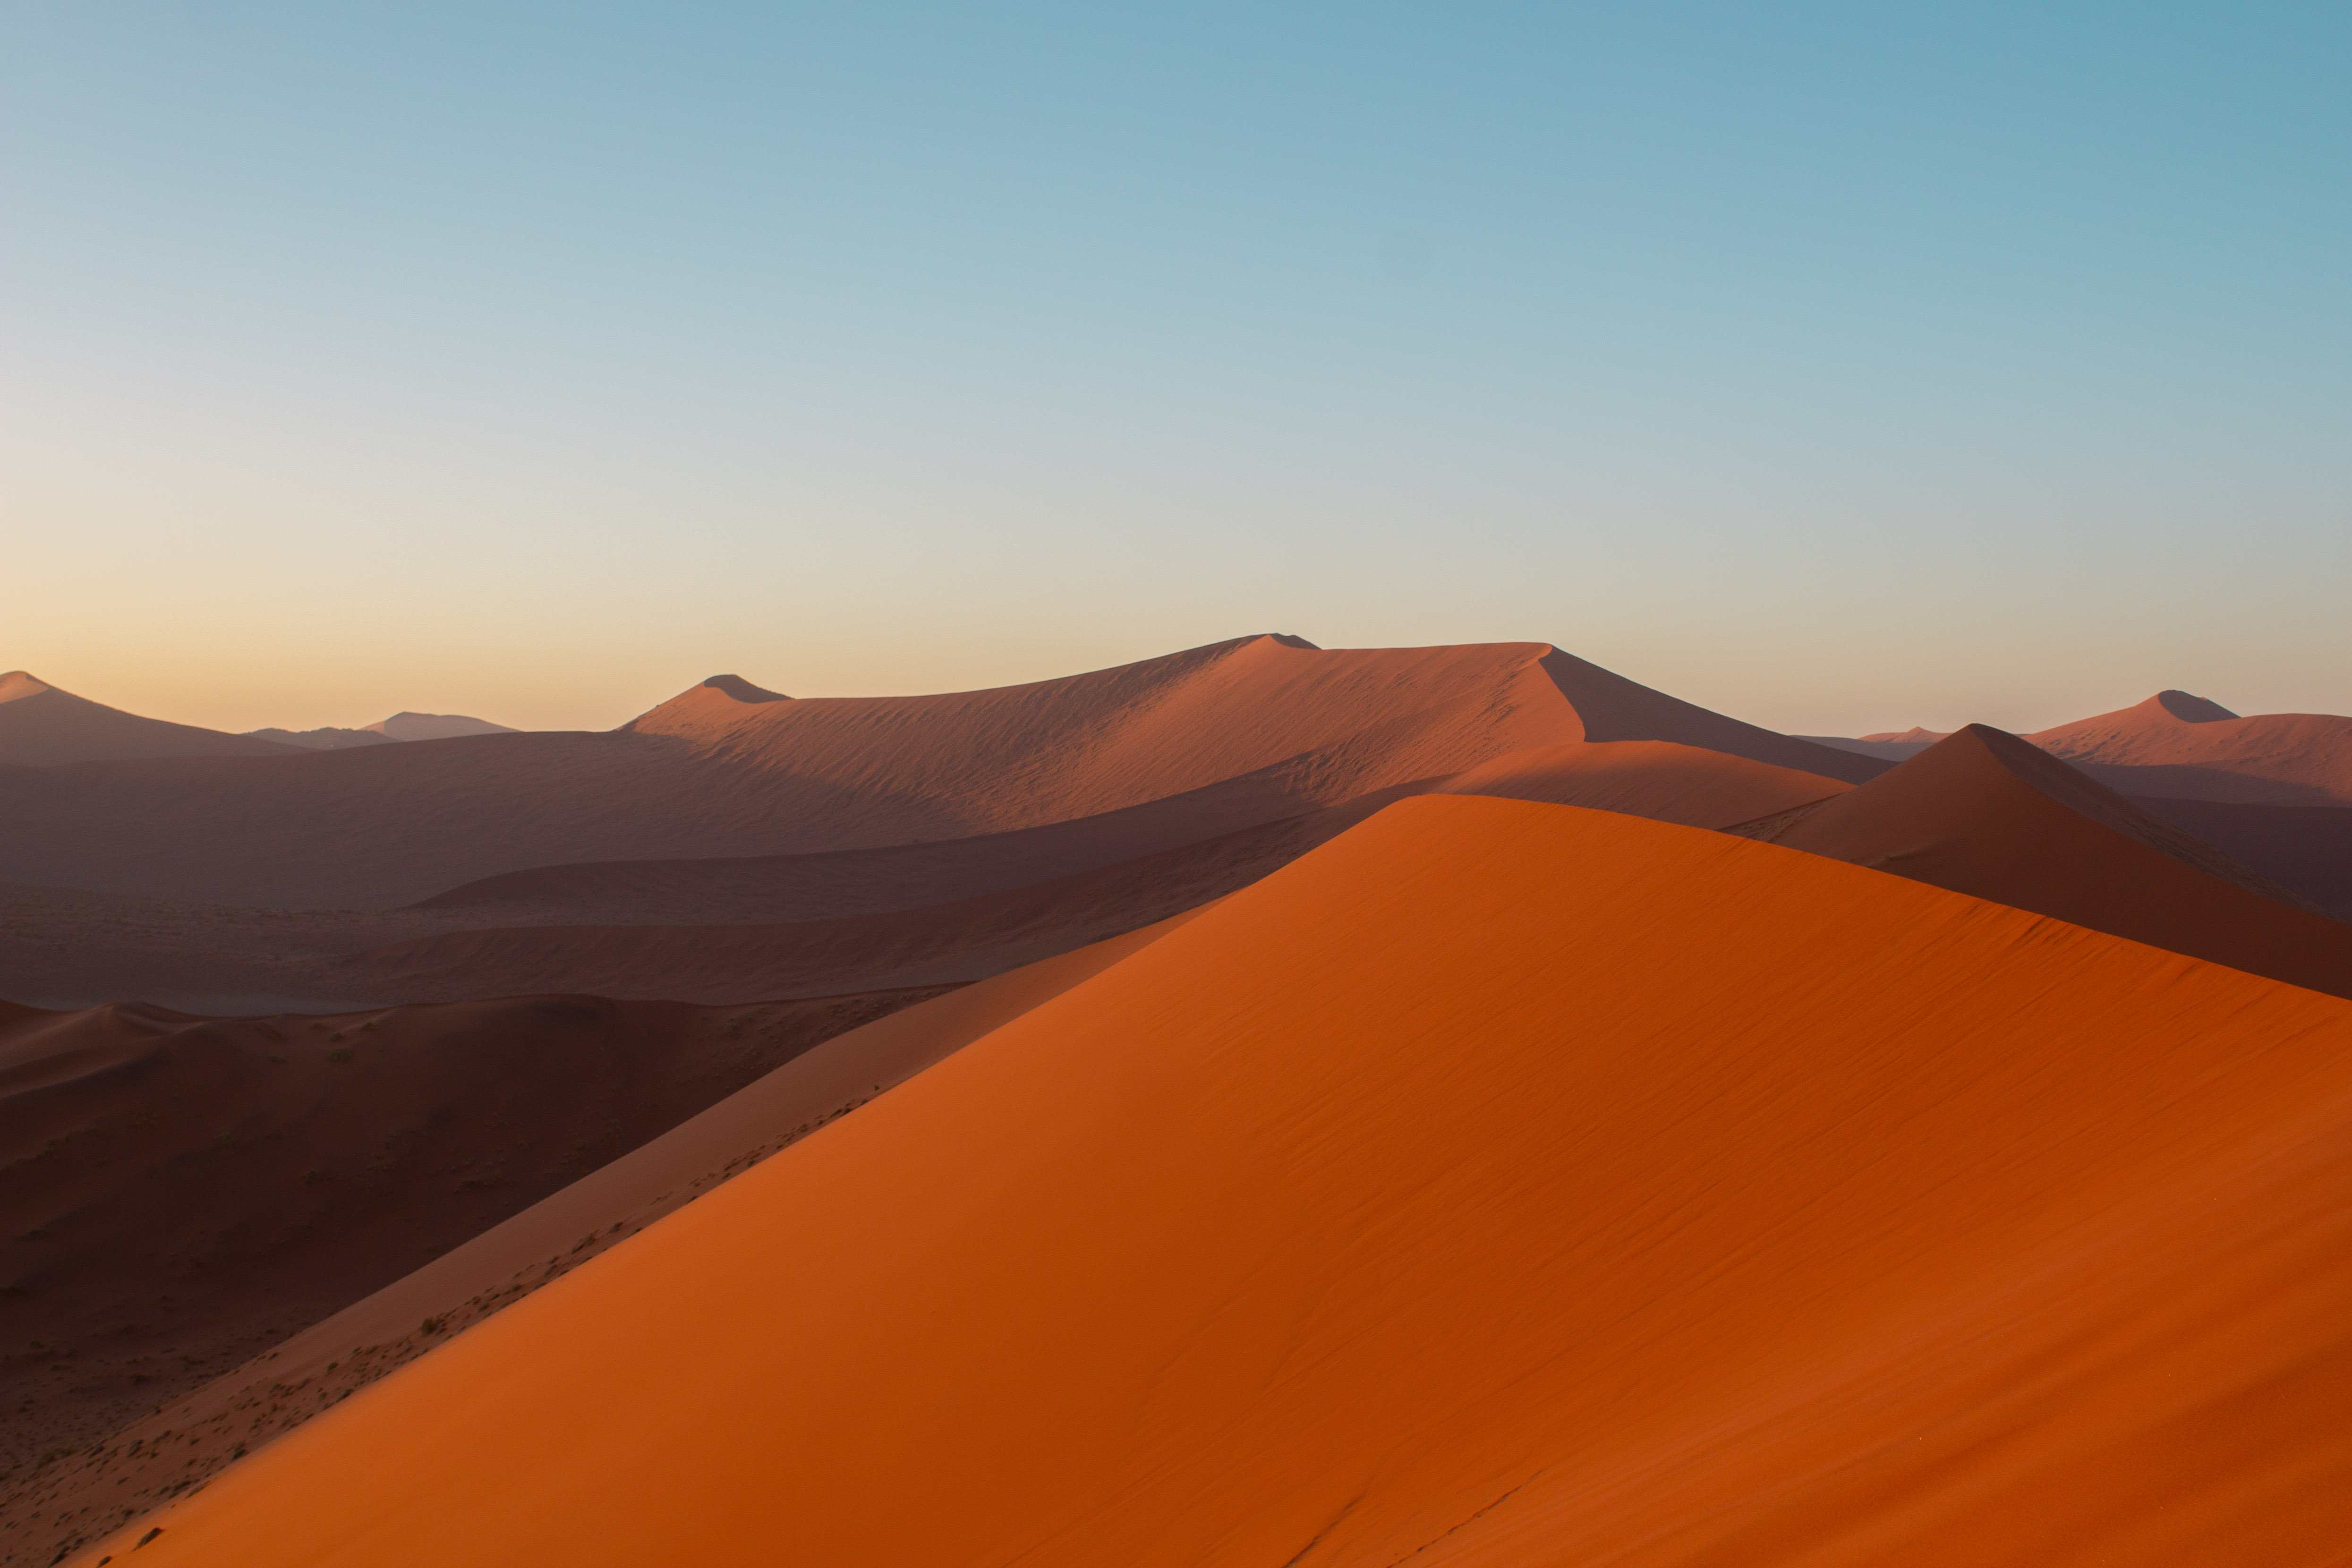 dune 45 is one of the highest climbable sand dunes in the world. this picture was taken right after sunrise as the sun is reflecting off the orange sand dunes.